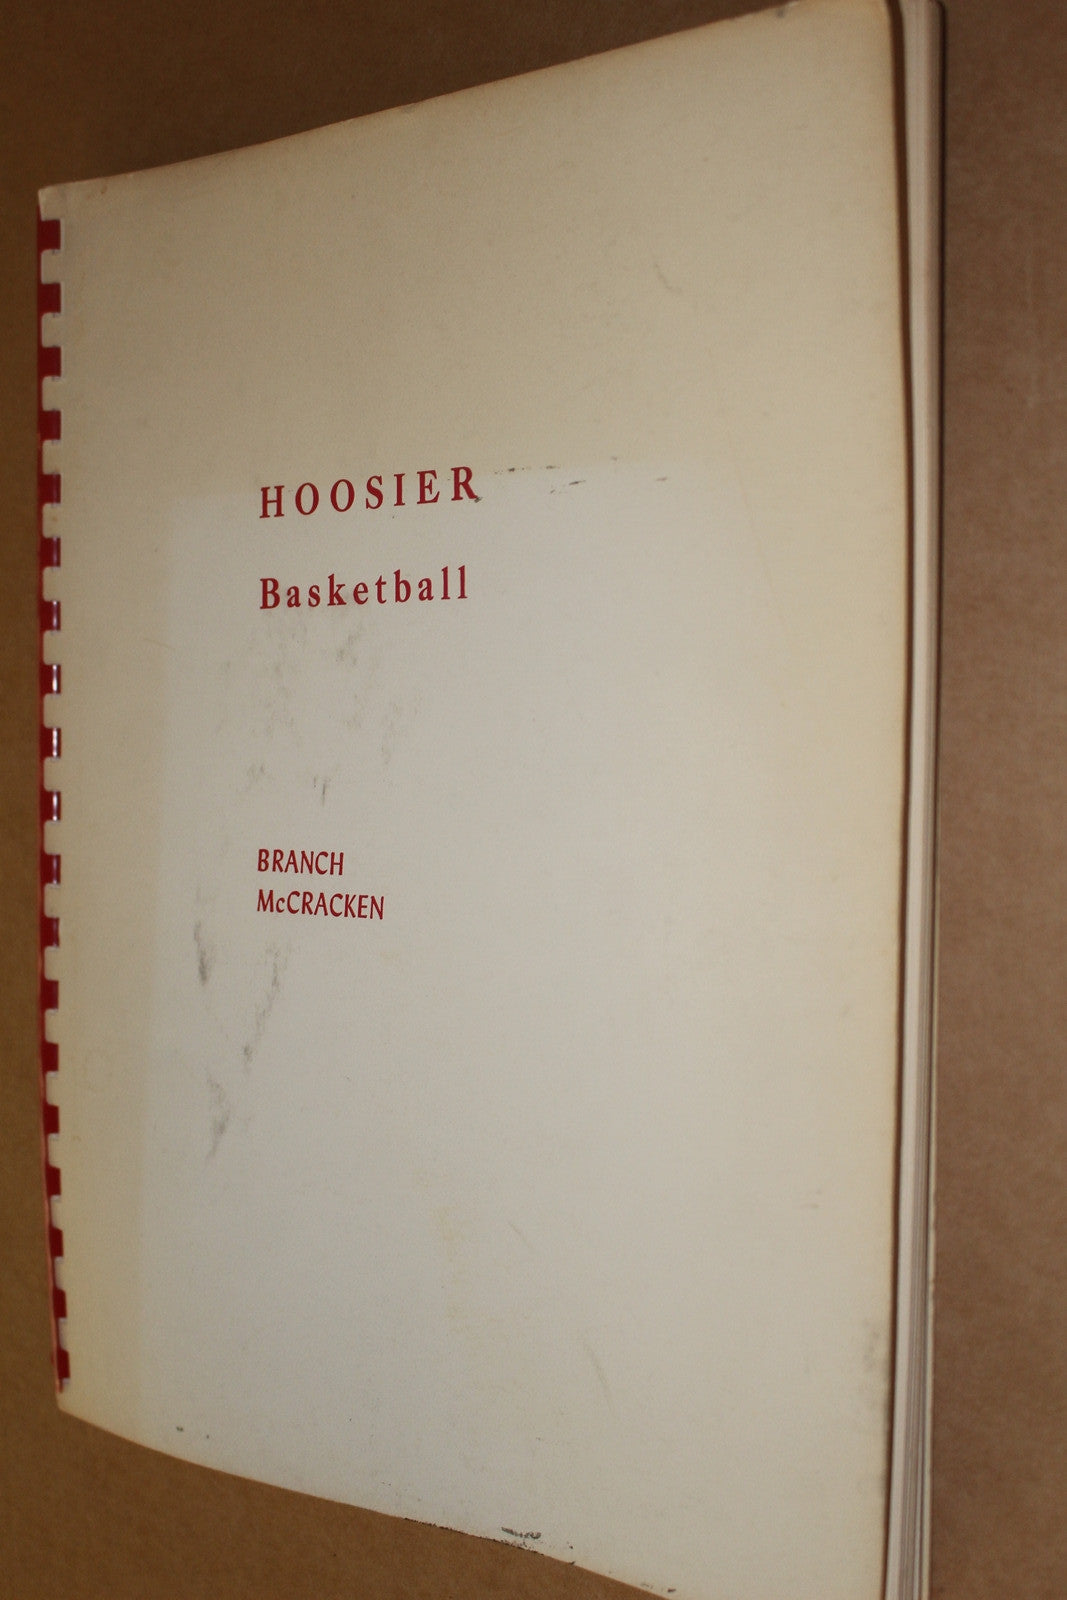 1970 Branch McCracken Hoosier Basketball Book - Vintage Indy Sports